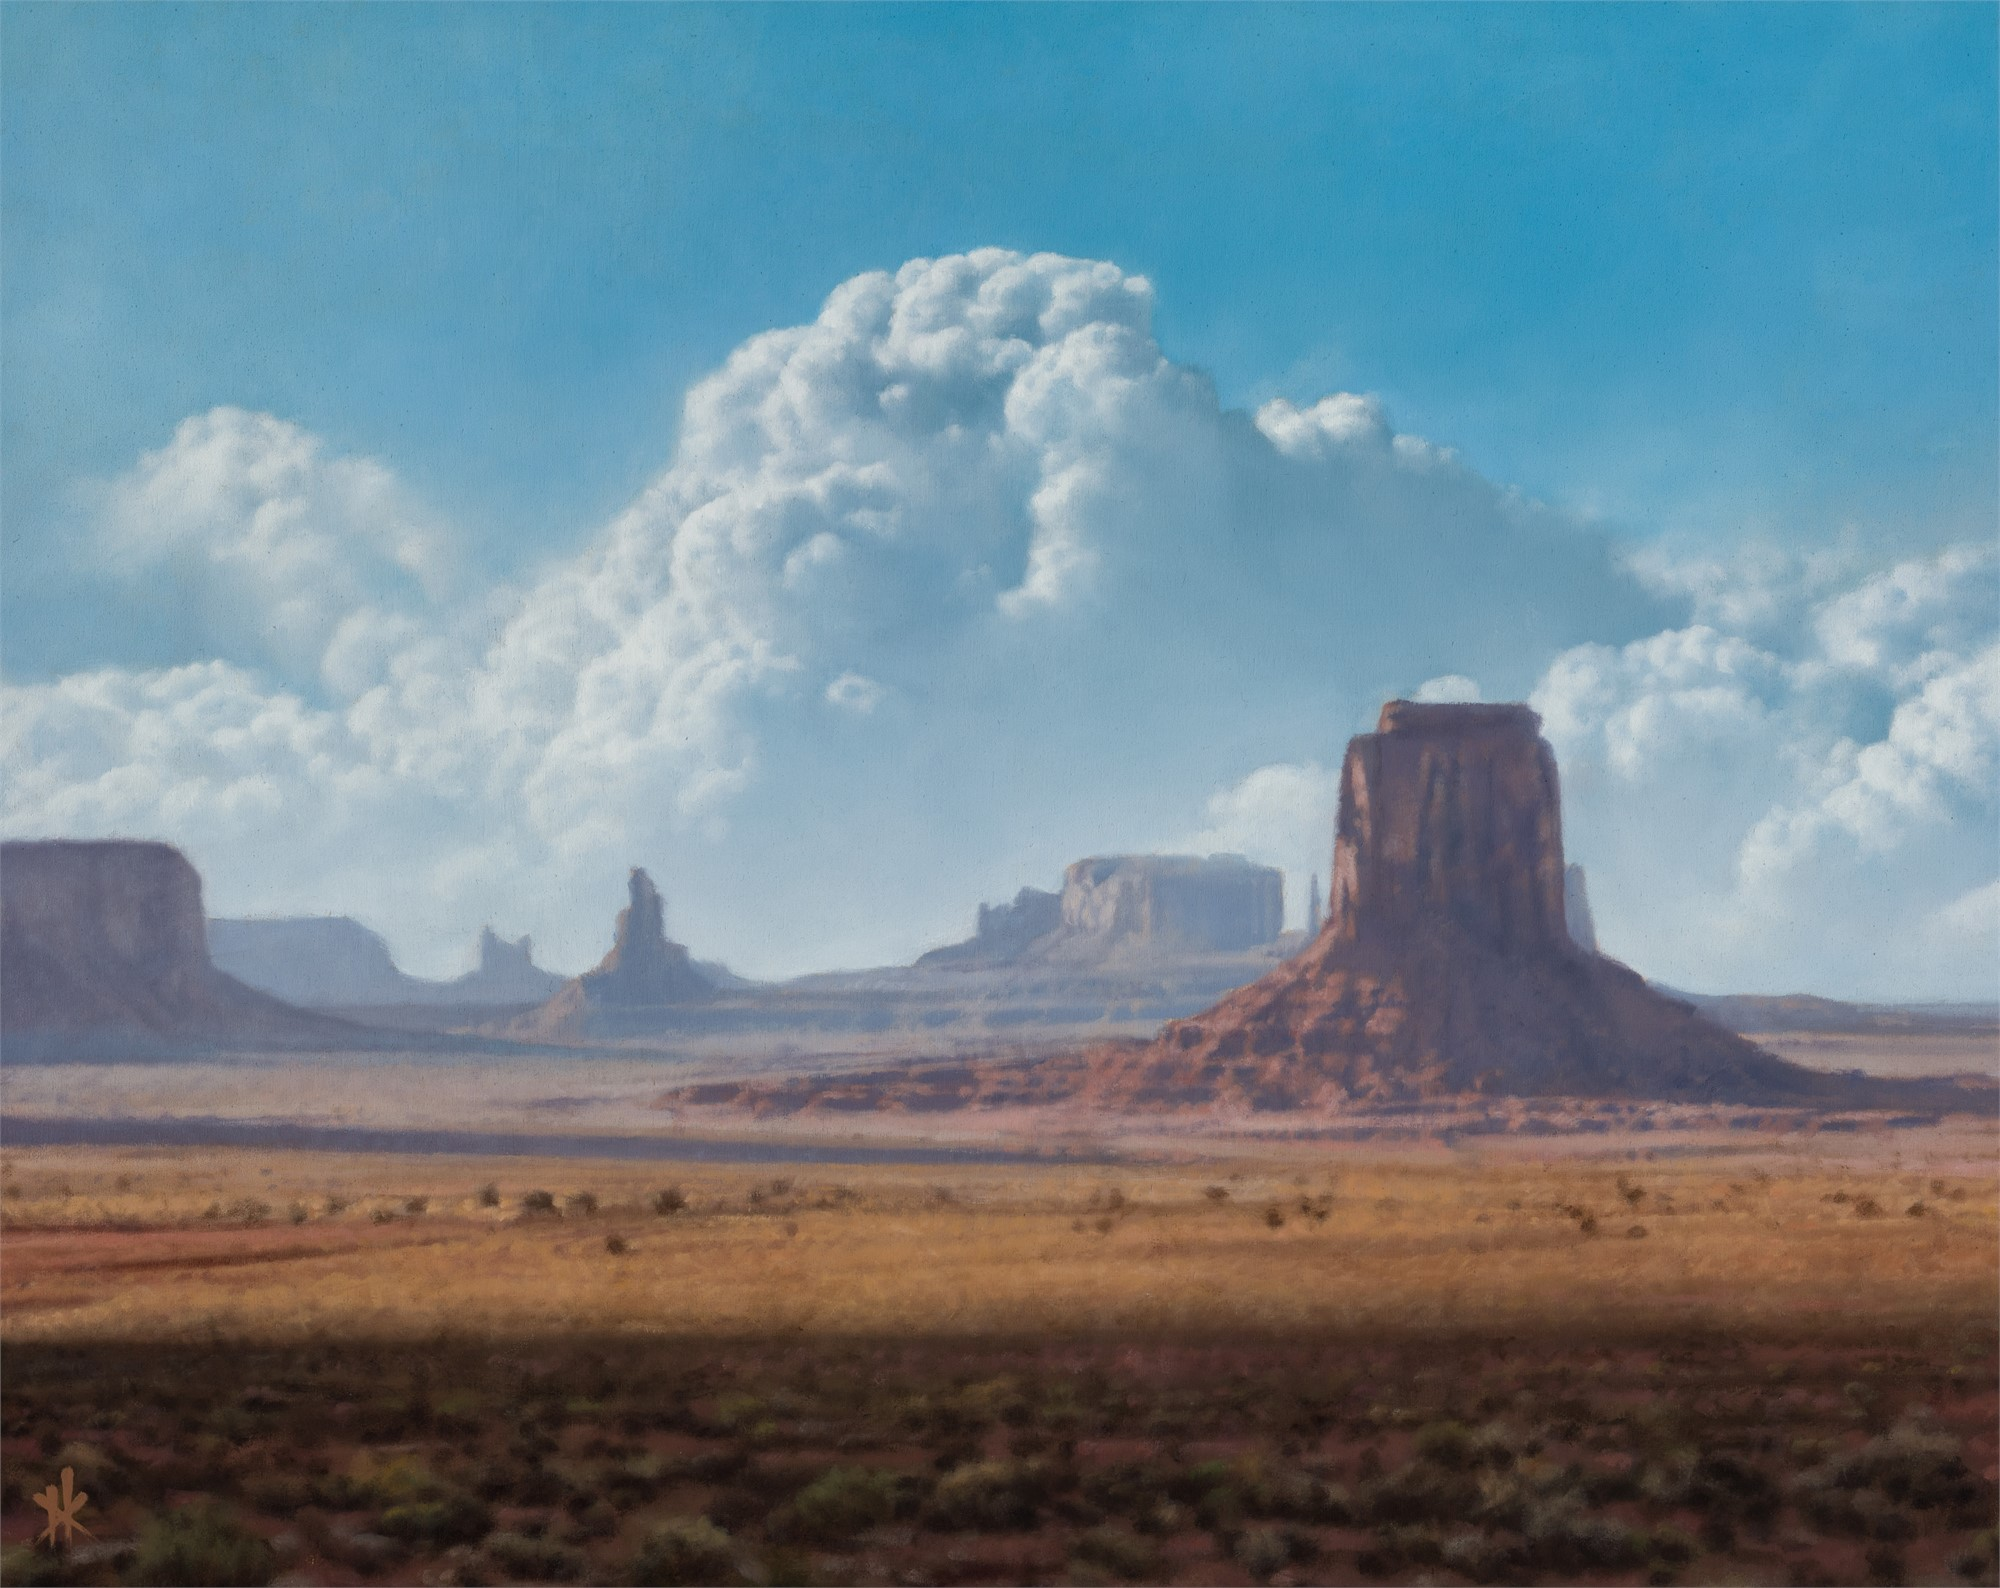 Artist's Point, Monument Valley by Patrick Kramer